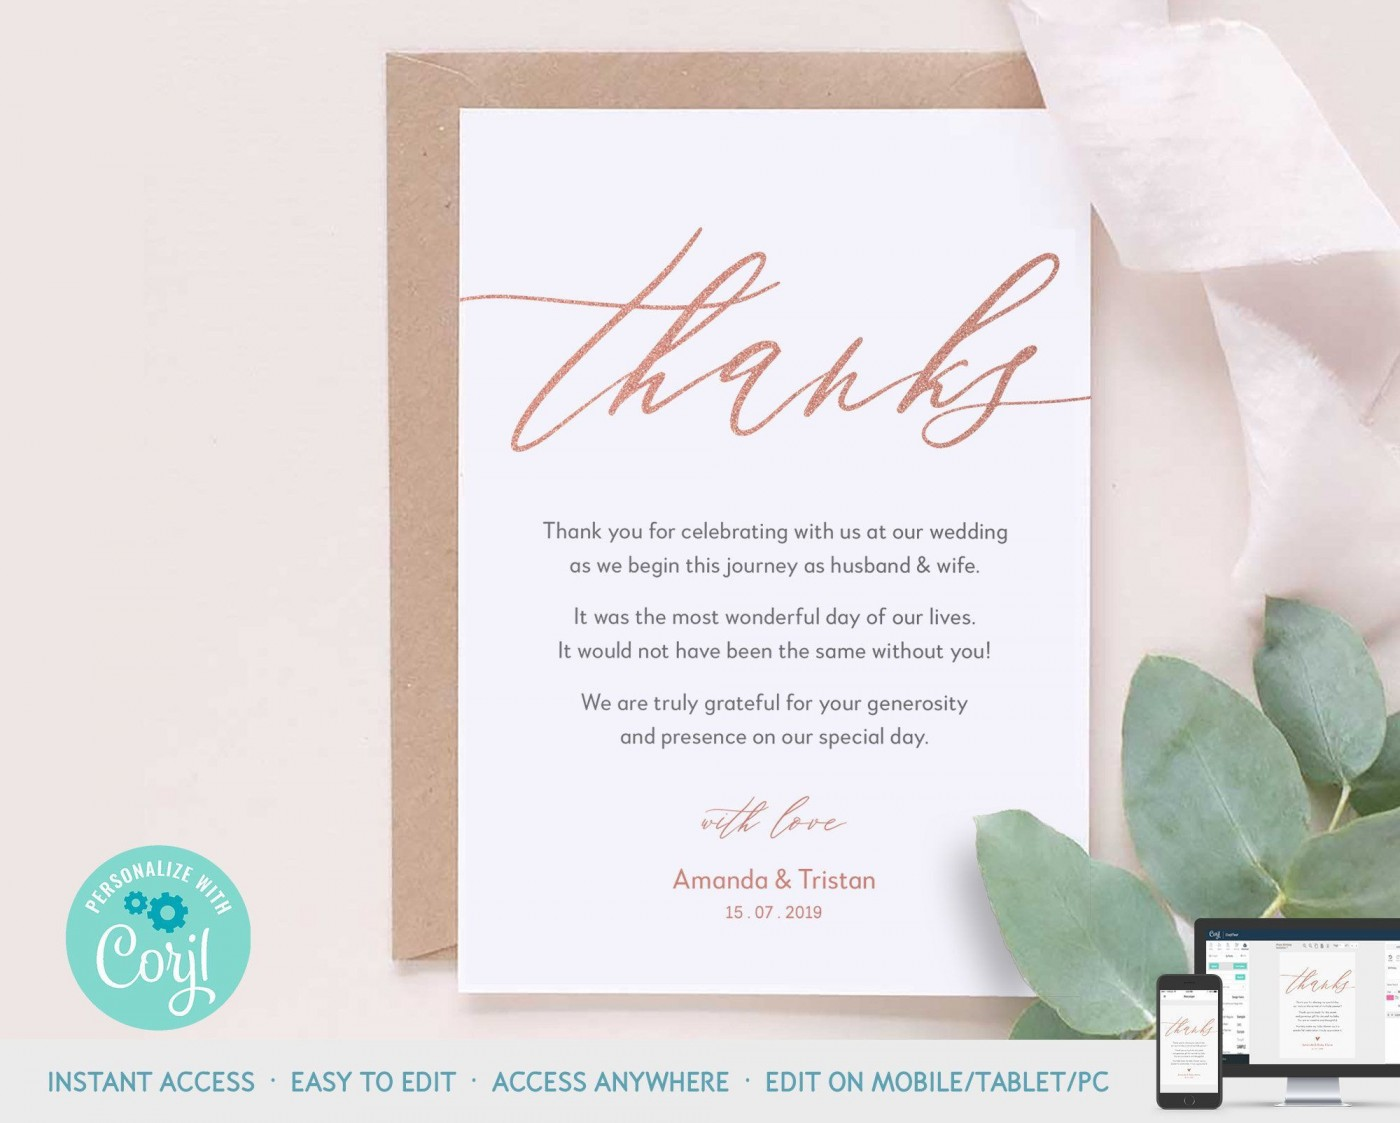 003 Top Wedding Thank You Note Template Design  Example Wording Sample For Money Gift Shower1400